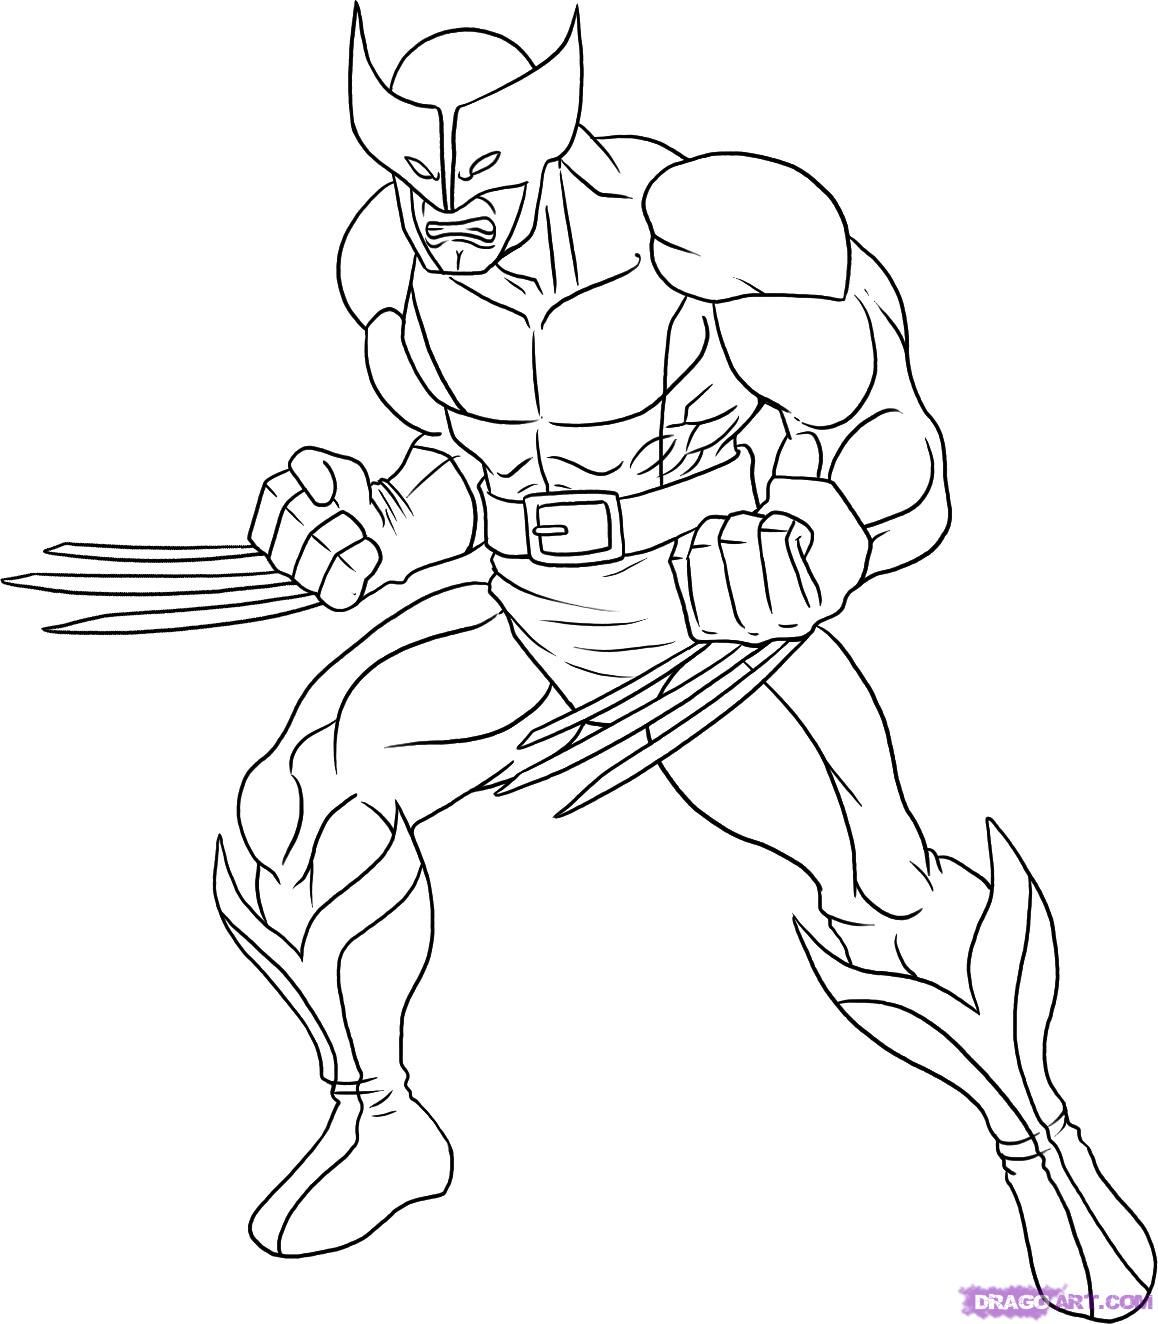 laundry room coloring pages | Neville-Land-Ranch/Meeting Wolverine ...